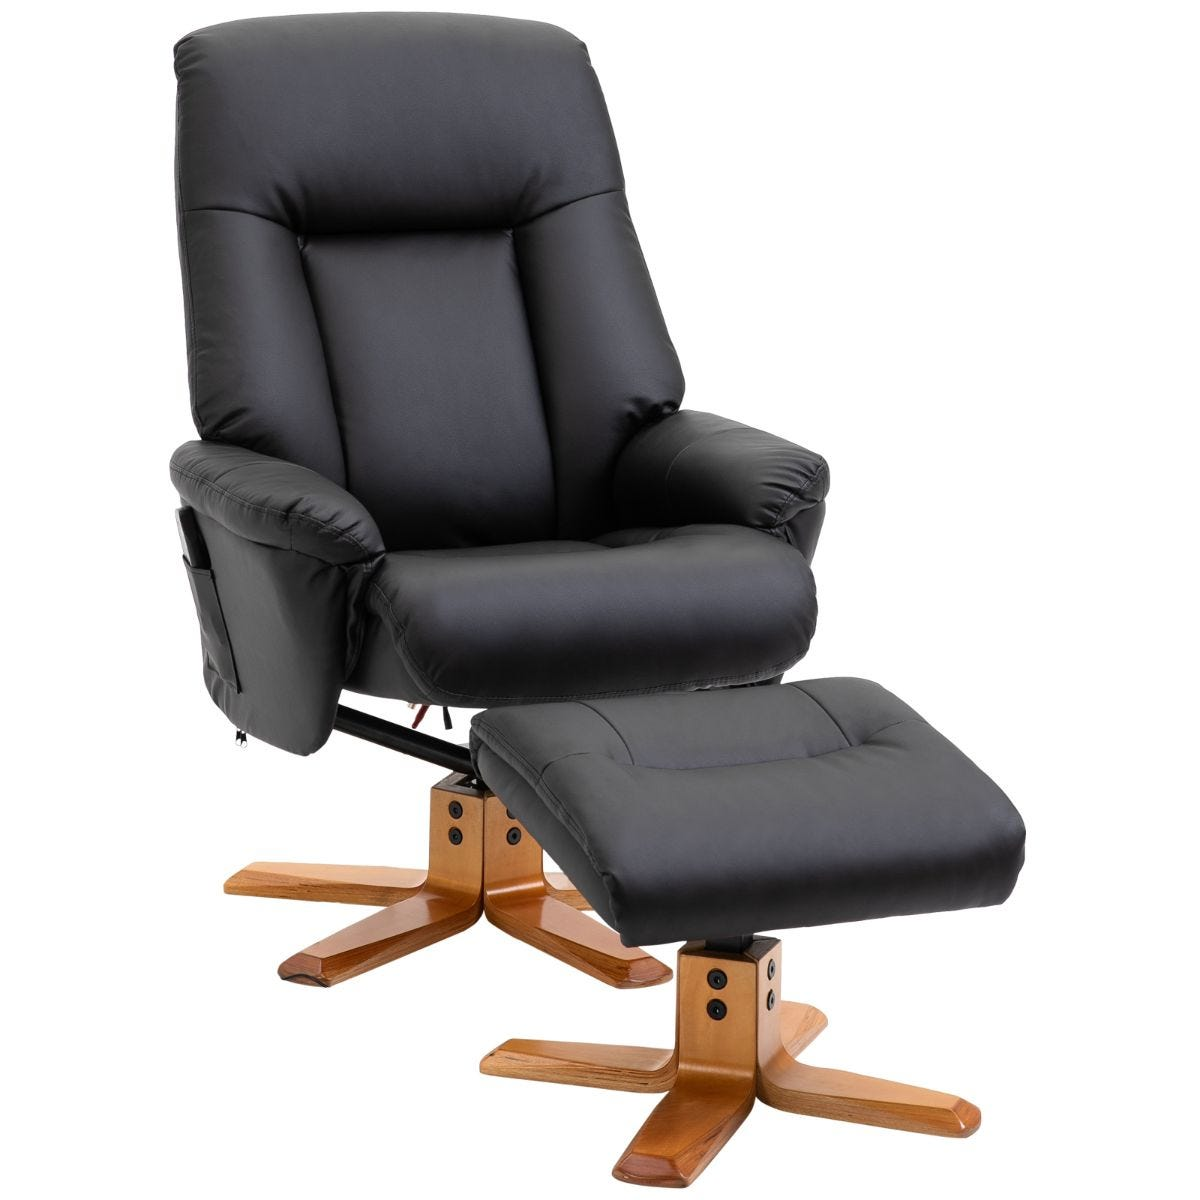 HOMCOM 10 Point Massage Sofa Armchair With Ottoman Heat Recliner Faux Leather Black